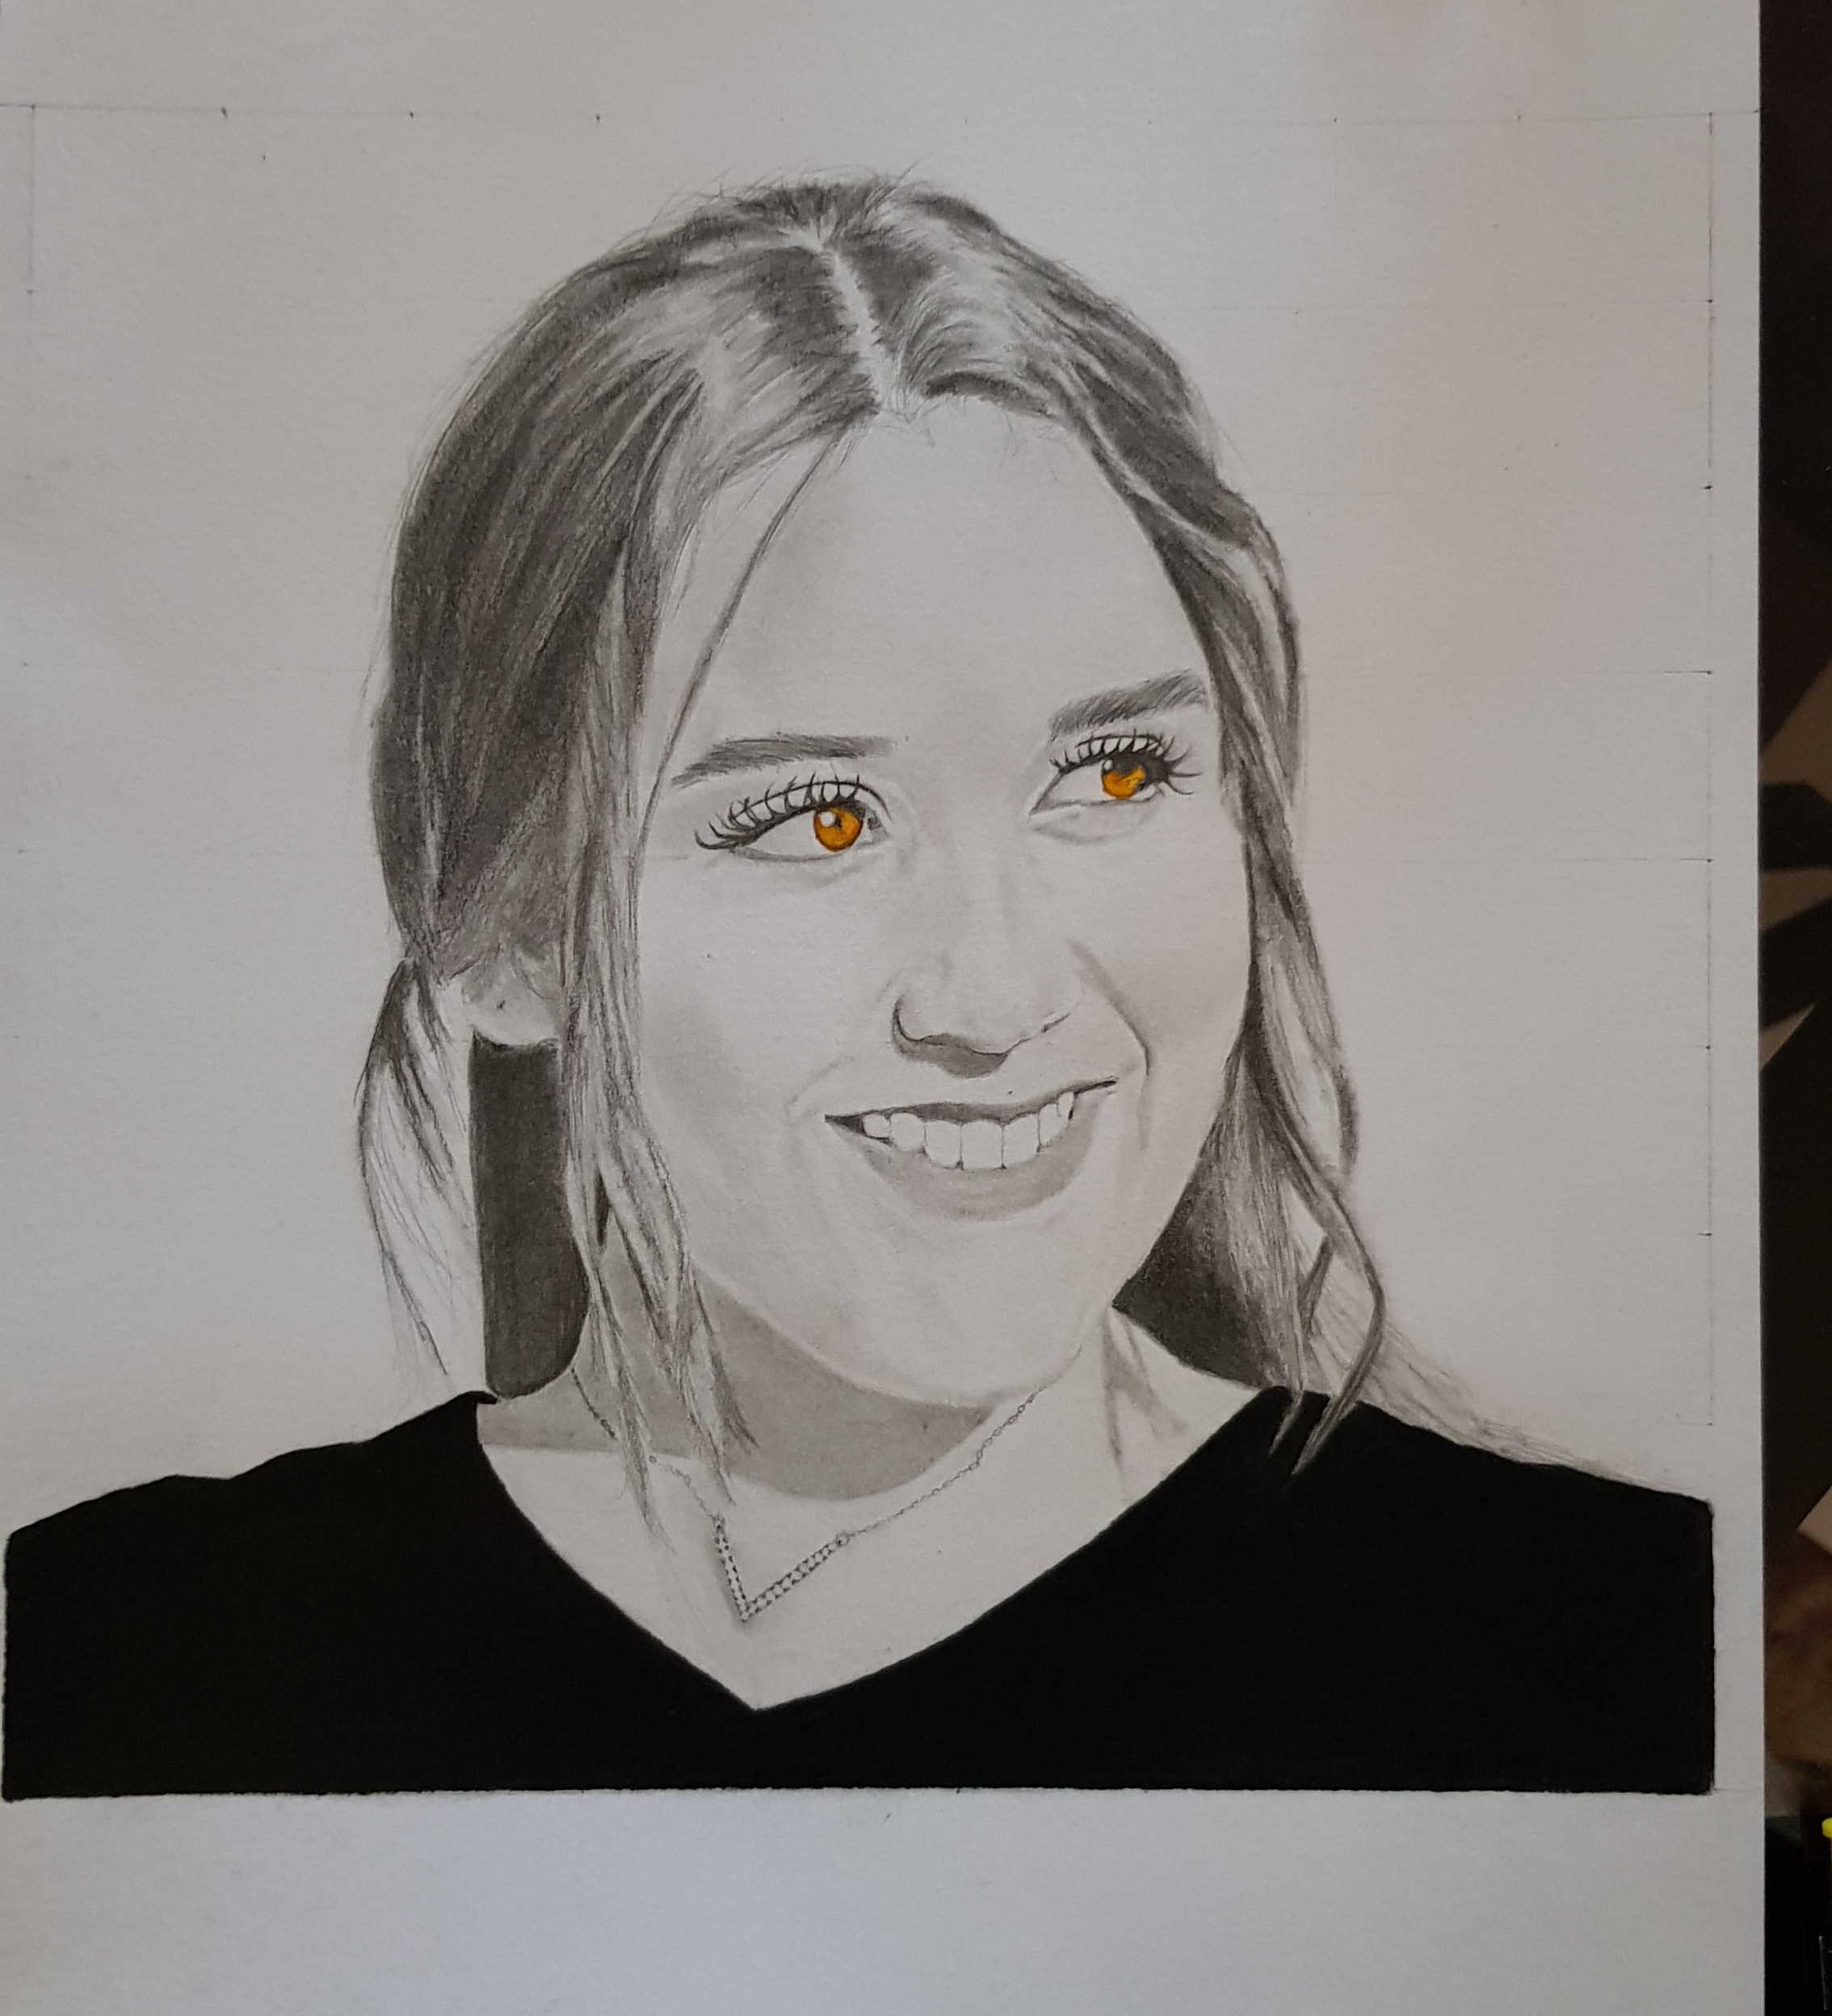 I will draw a realistic portrait for you or one of your loved ones